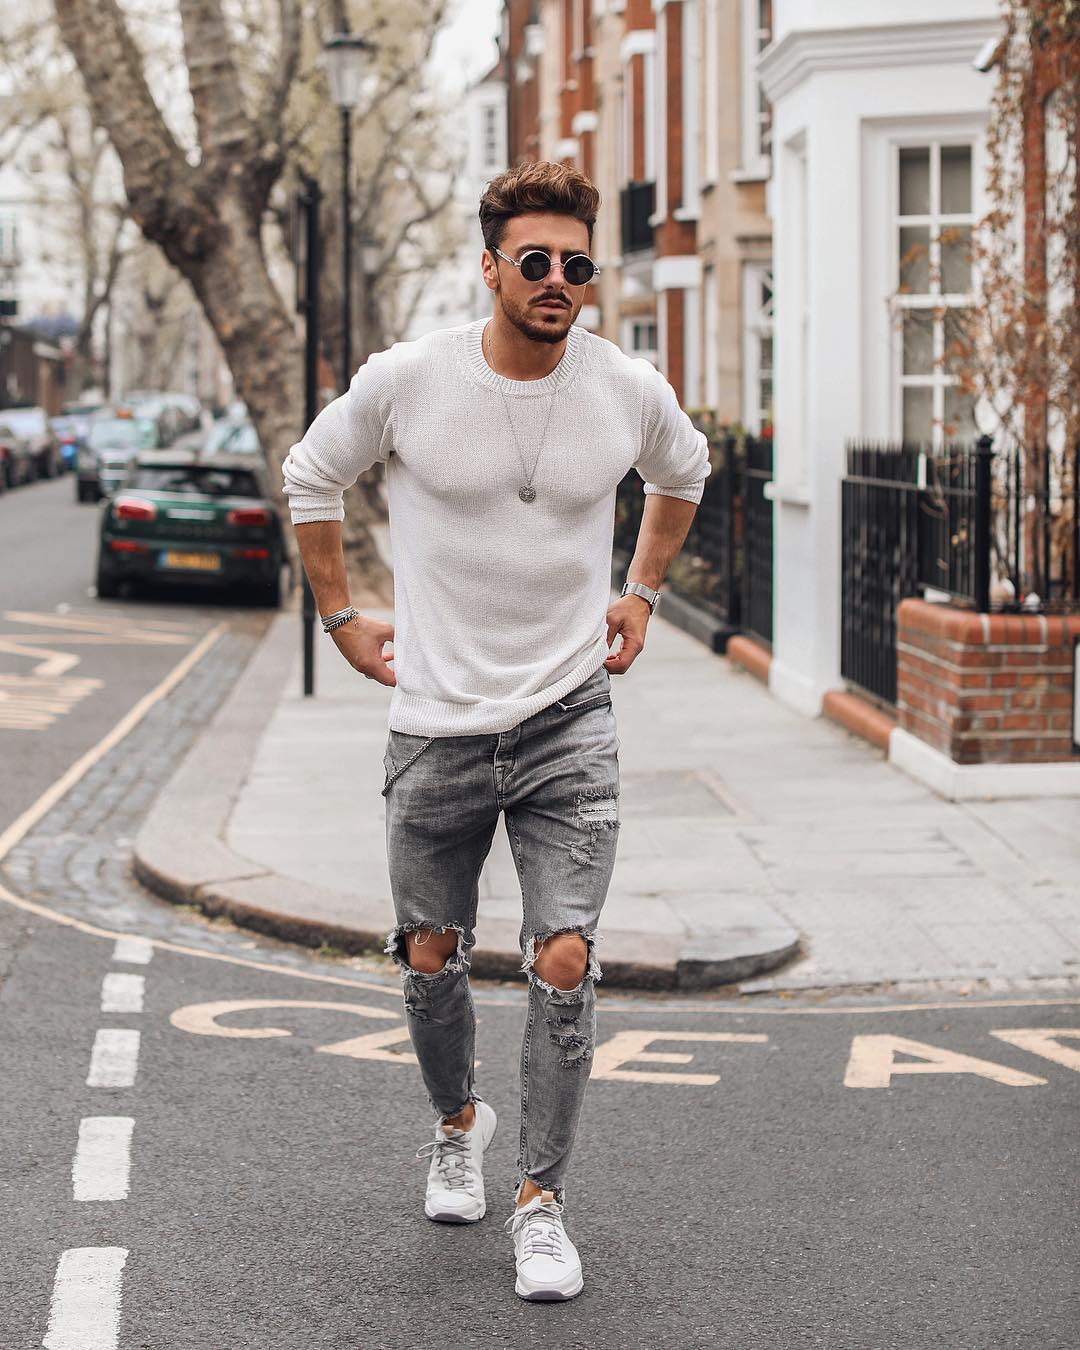 White t shirt,grey ripped jeans and black round sunglasses